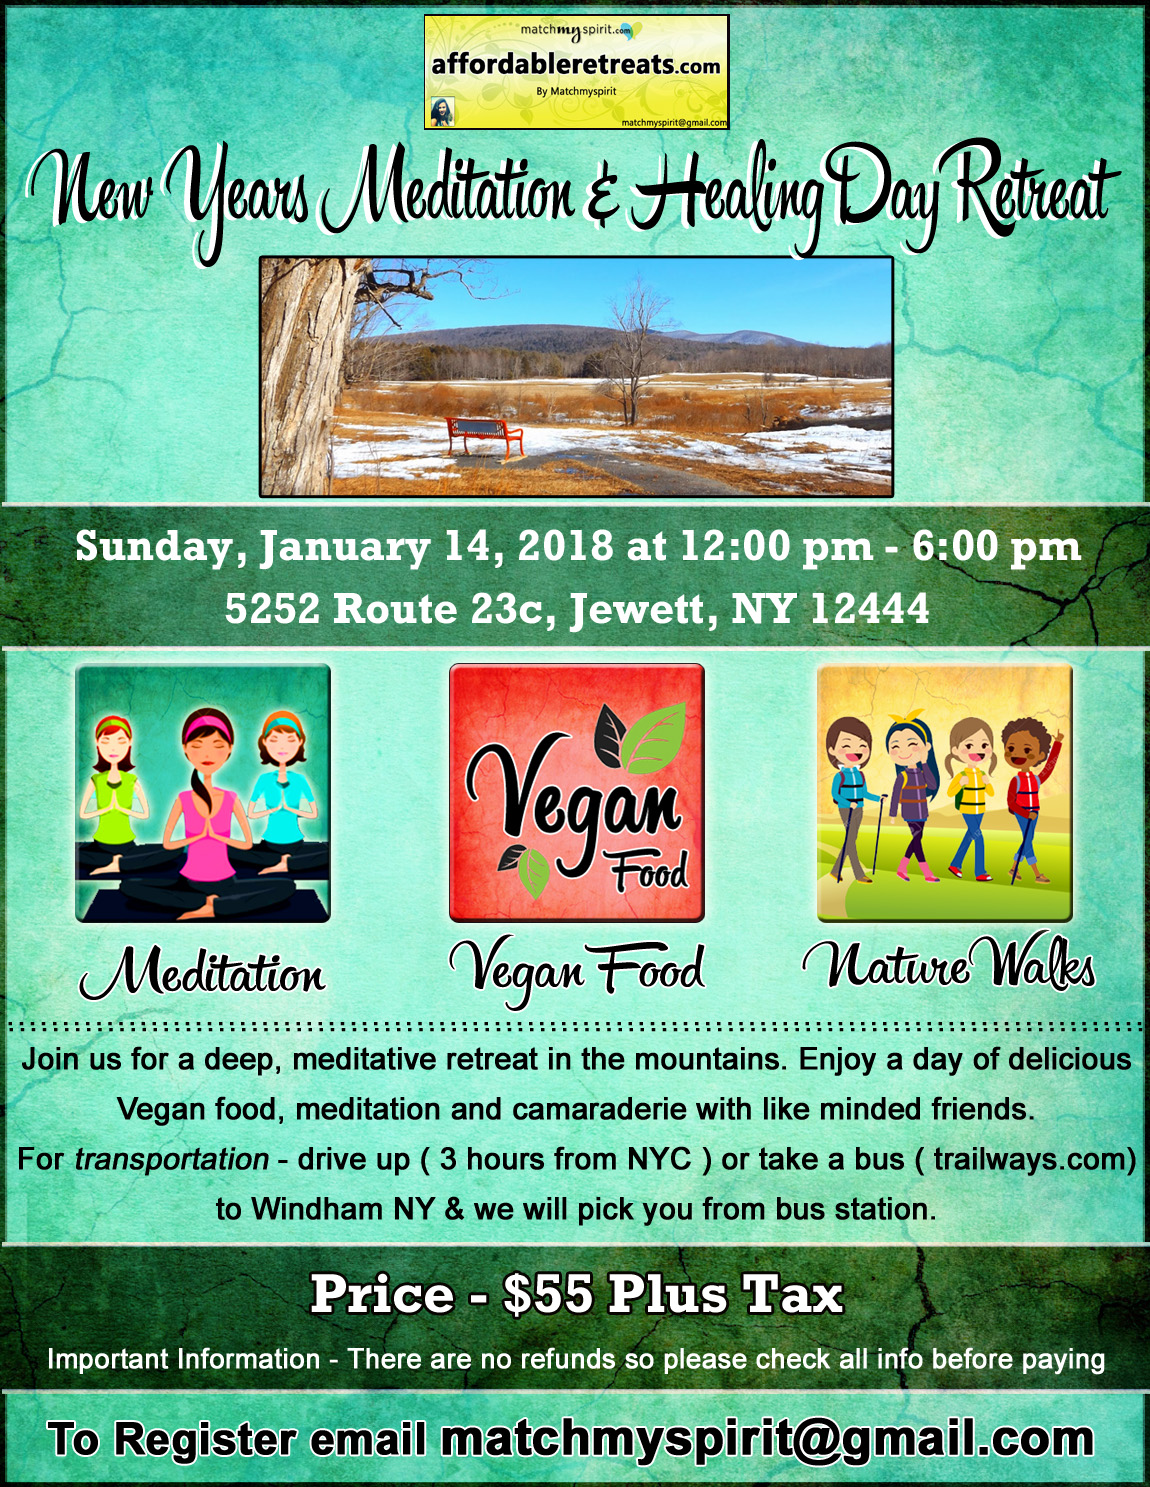 New Years Meditation & Healing Day Retreat